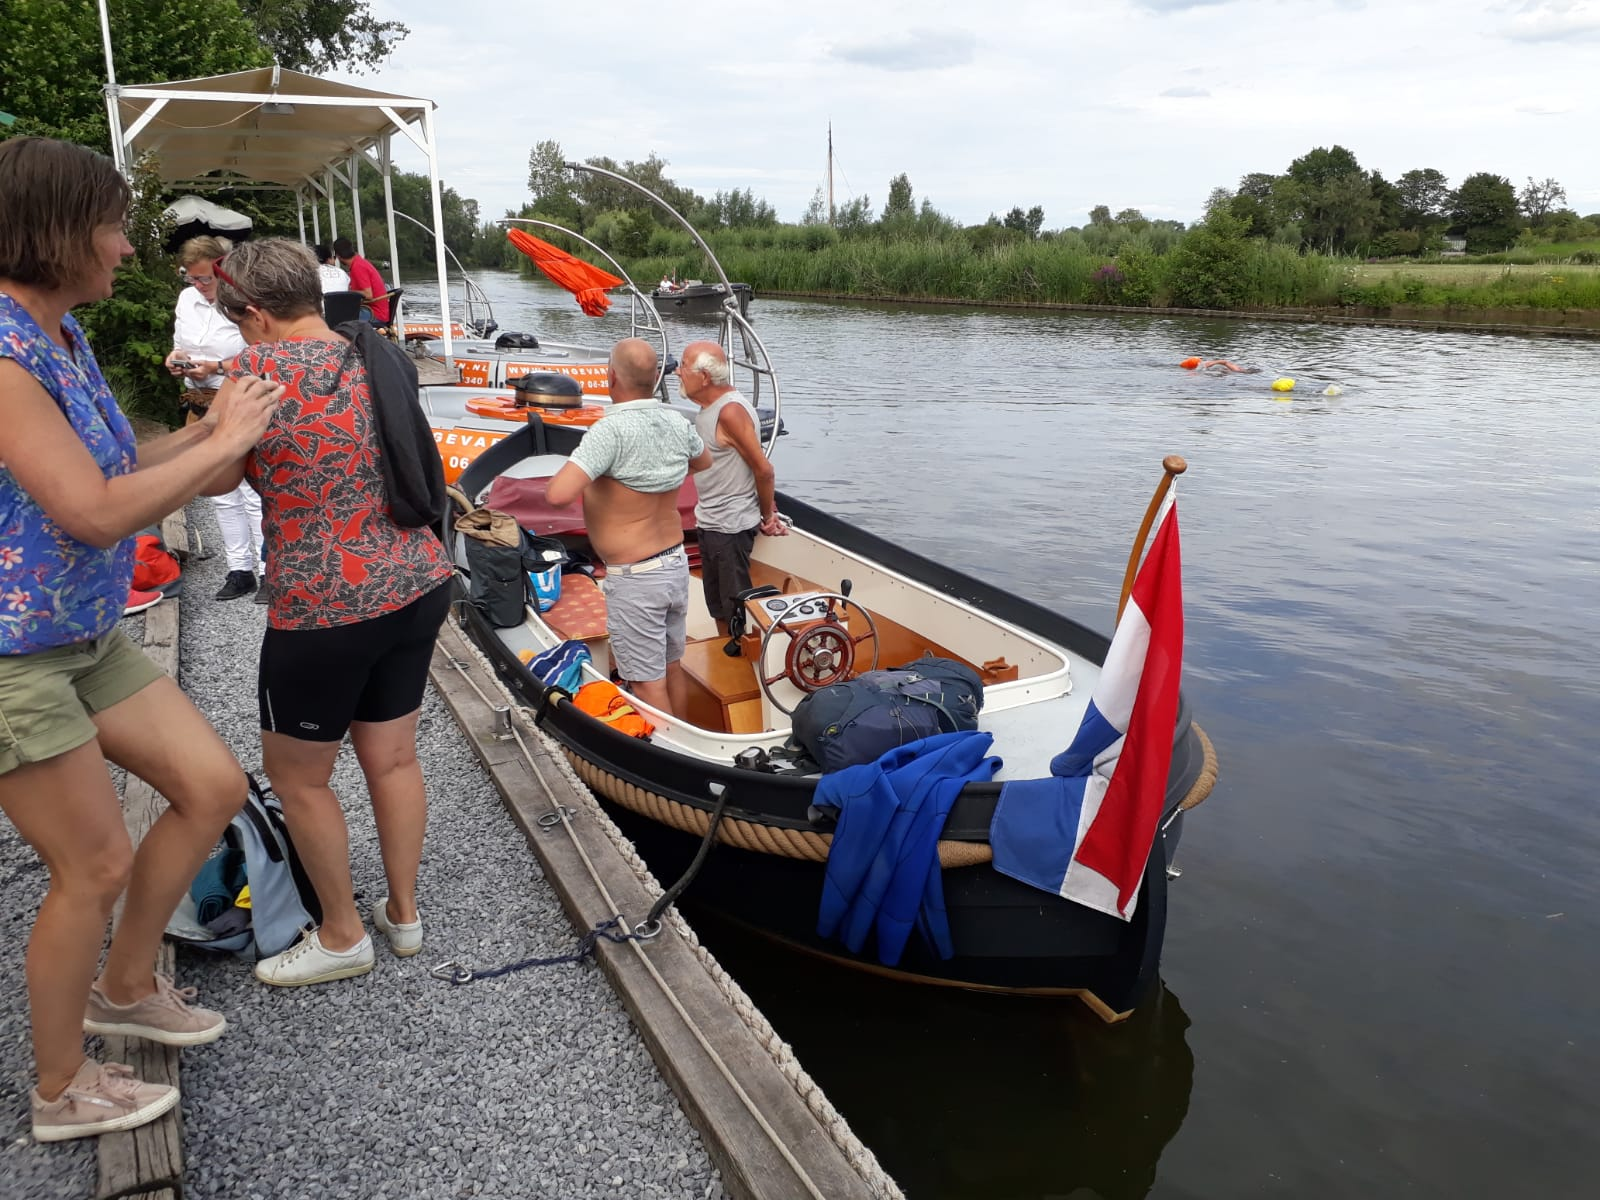 22 juli 2020 - Slow Linge triathlon # 26